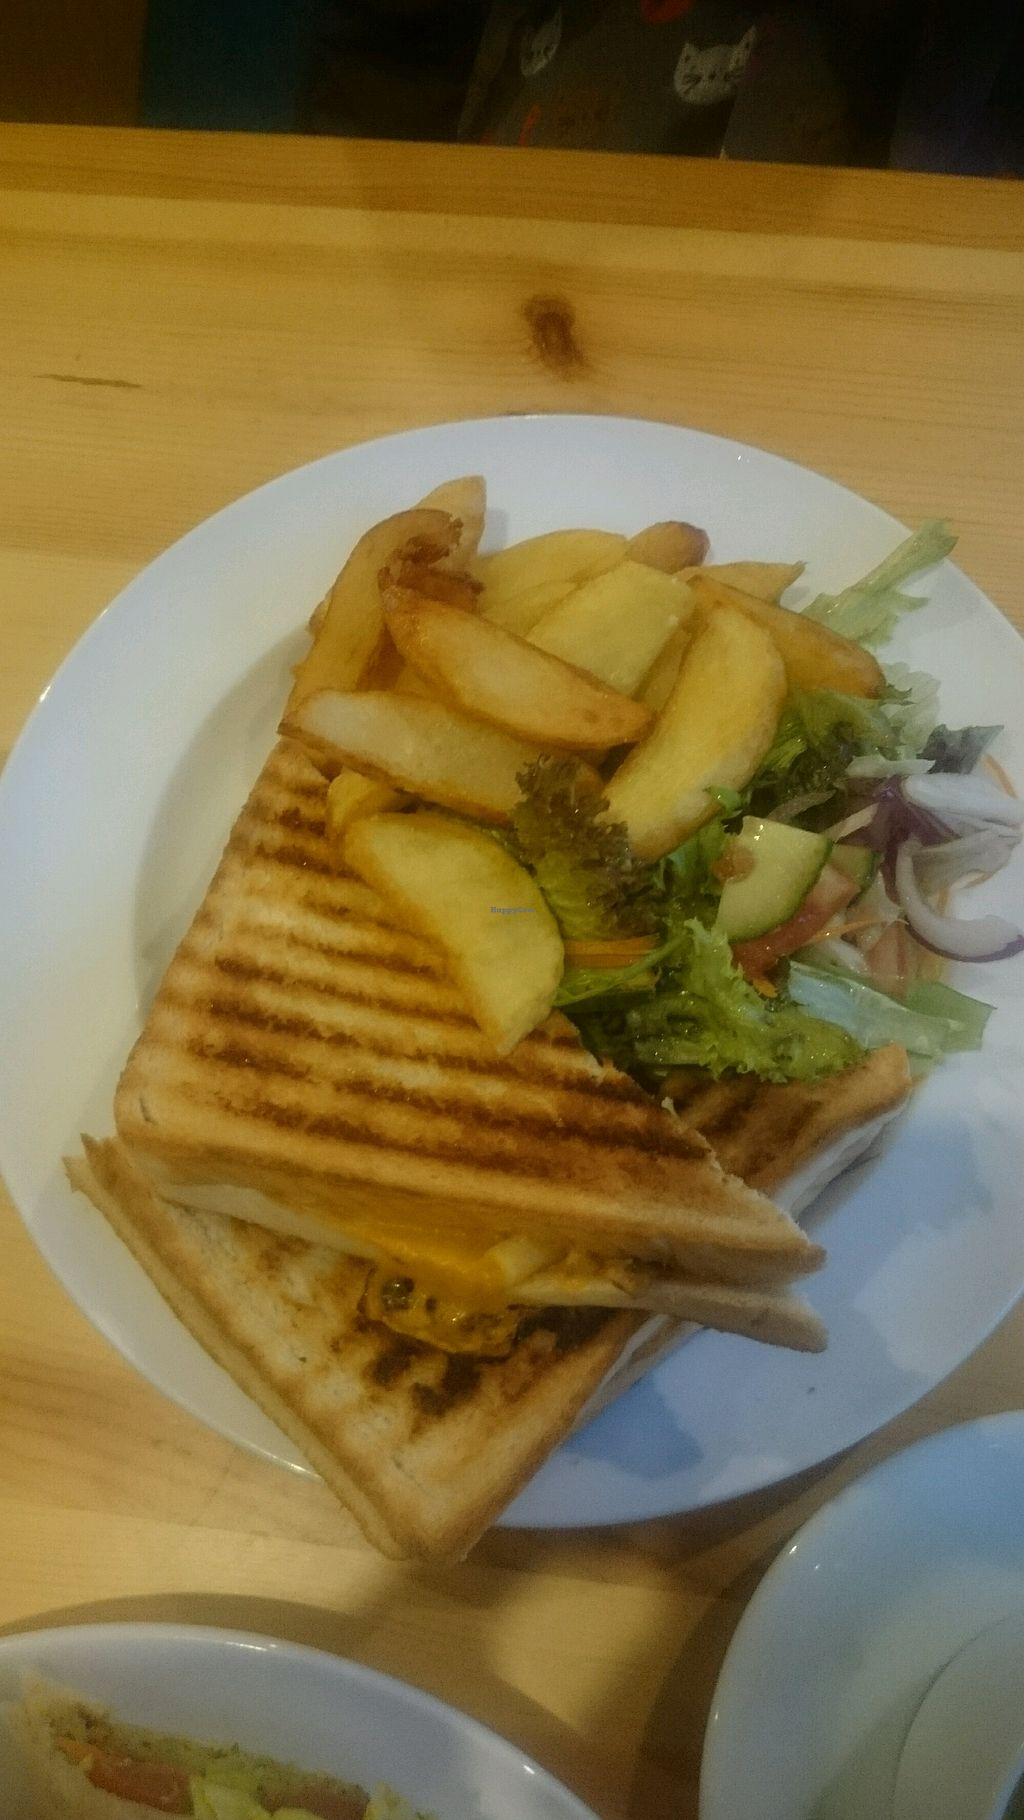 """Photo of The Willow Tree Cafe  by <a href=""""/members/profile/Cstorr64"""">Cstorr64</a> <br/>mac n 'cheese' toastie  <br/> January 1, 2018  - <a href='/contact/abuse/image/97937/341627'>Report</a>"""